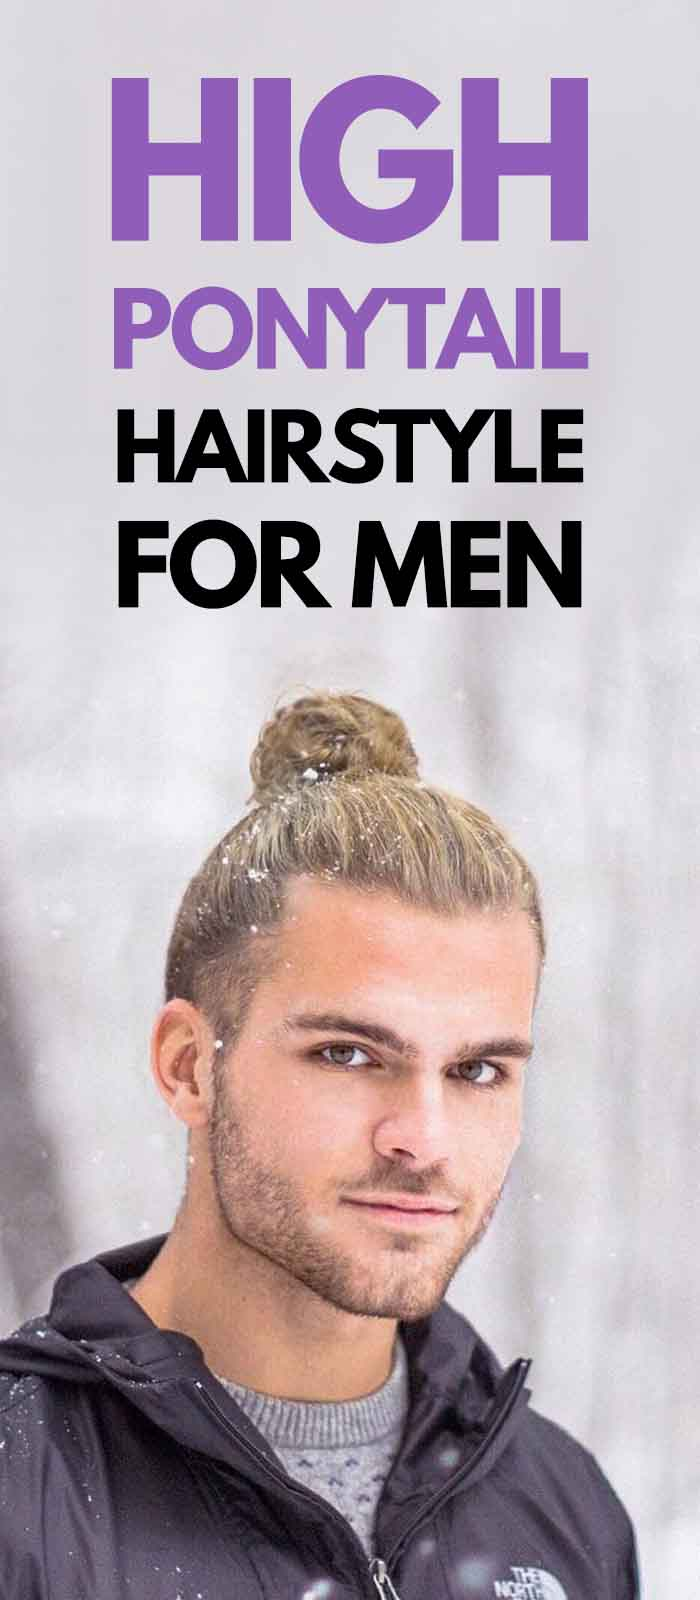 The High Ponytail Hairstyle For Men To Try In 2020